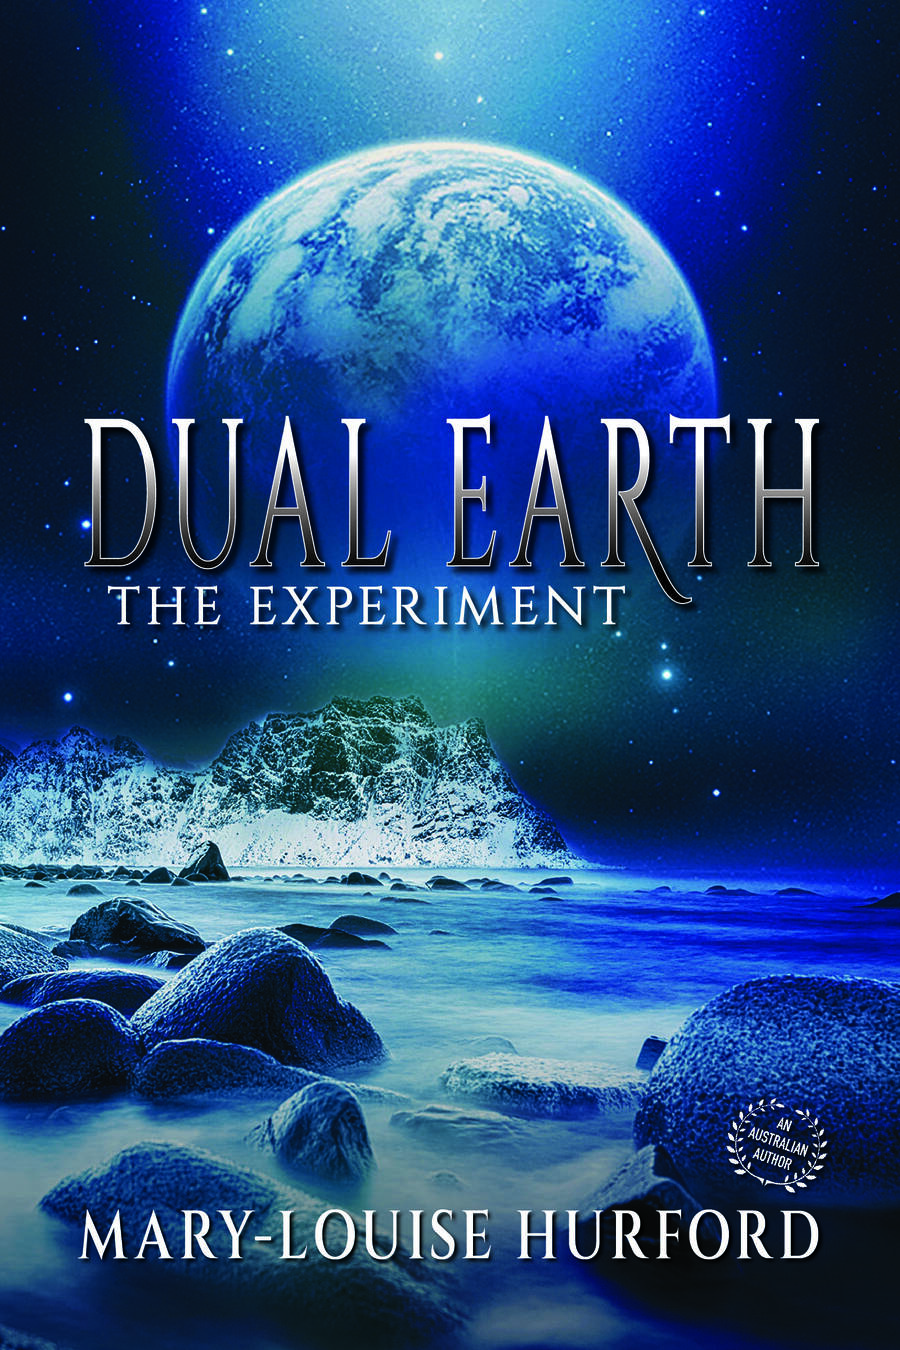 Dual Earth The Experiment